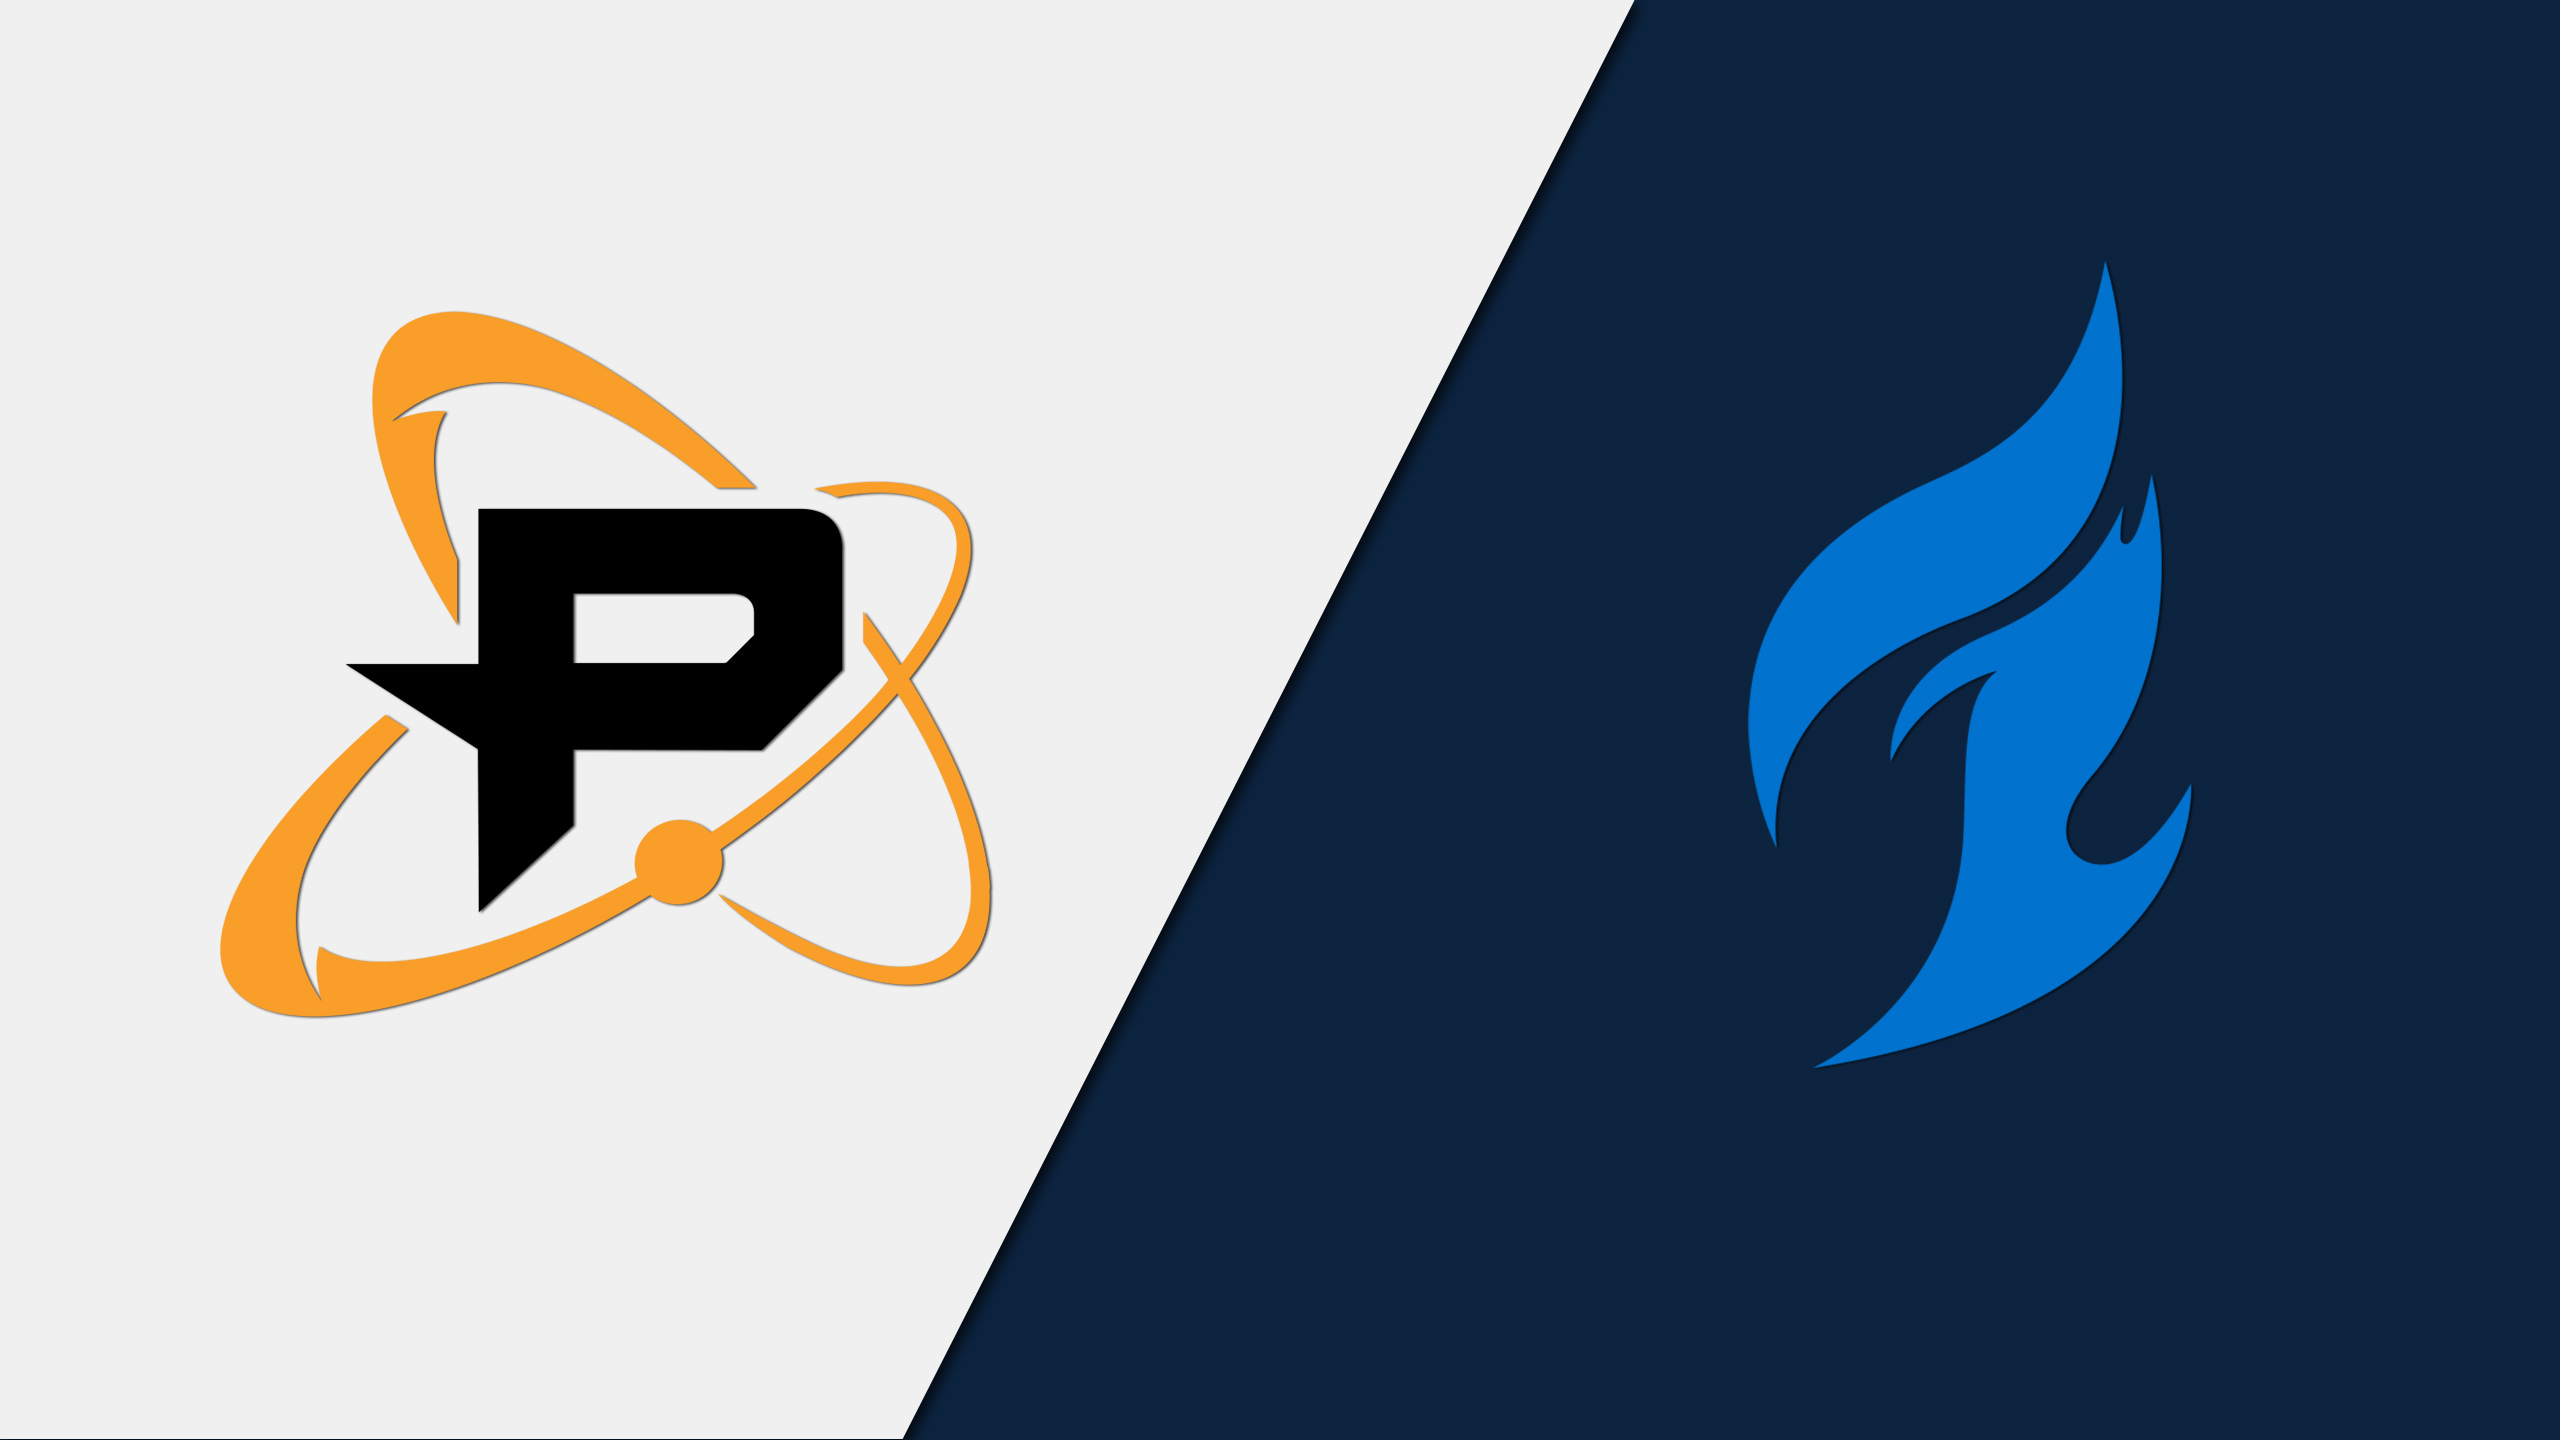 Philadelphia Fusion vs. Dallas Fuel